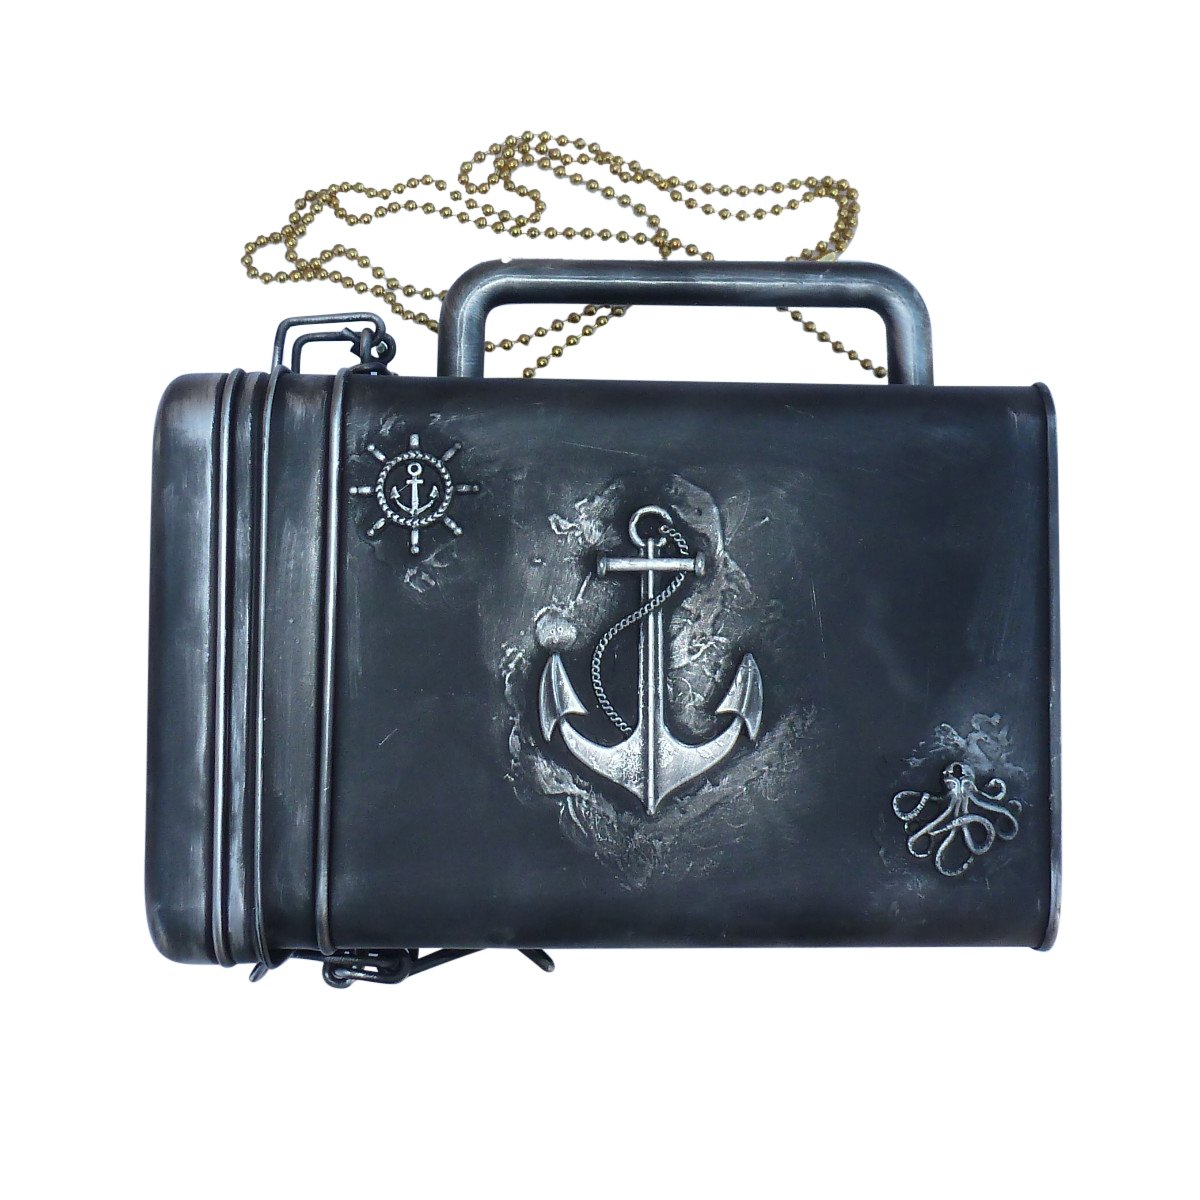 SteAMPunk travel Nautical Steampunk purse BOX handmade by OldJunkyardBoutique (Image #2)